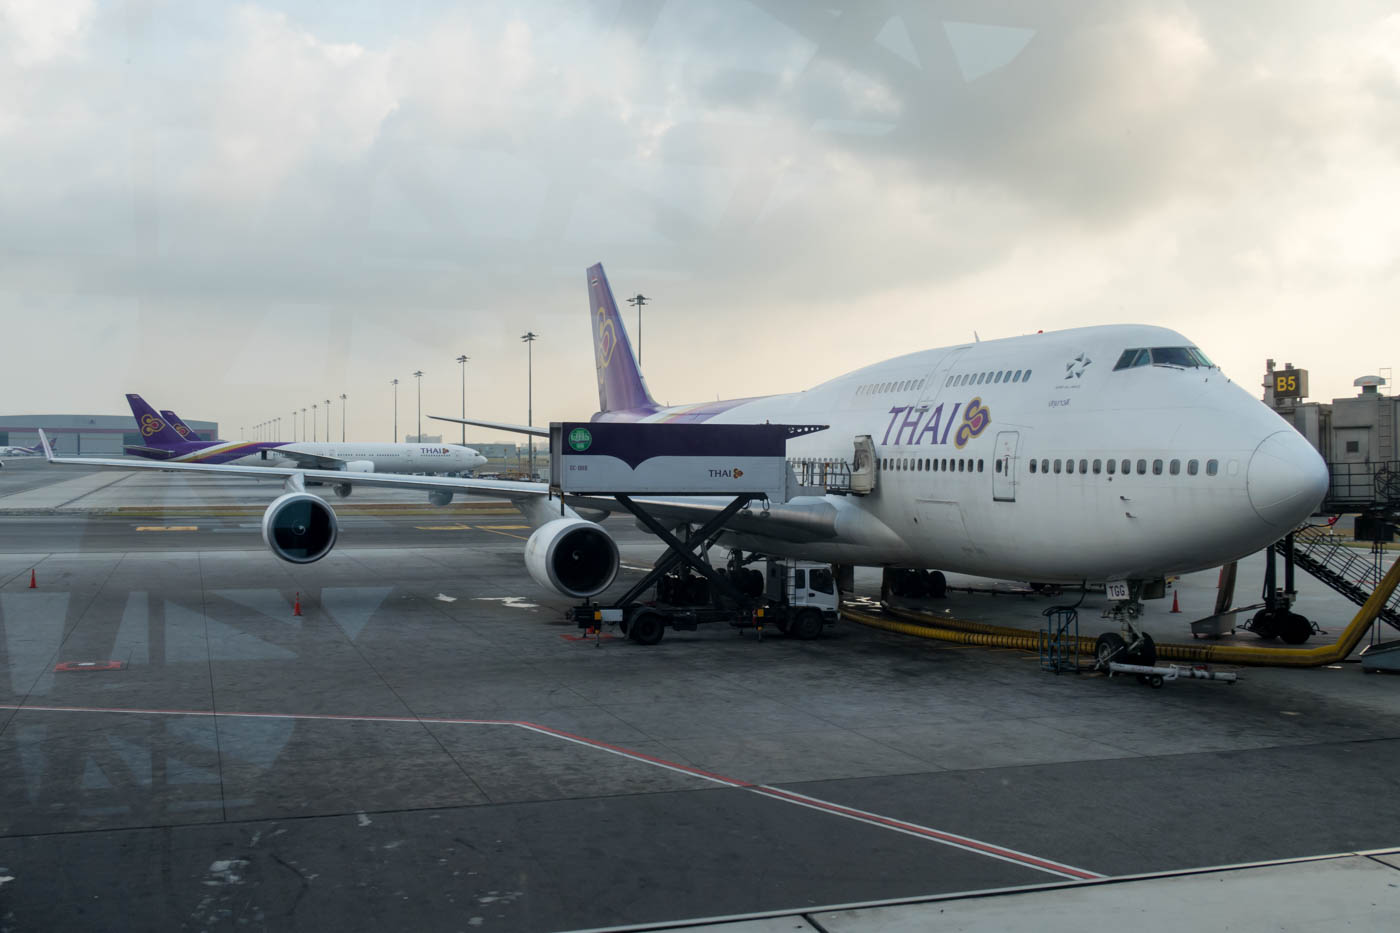 Thai Airways 747-400